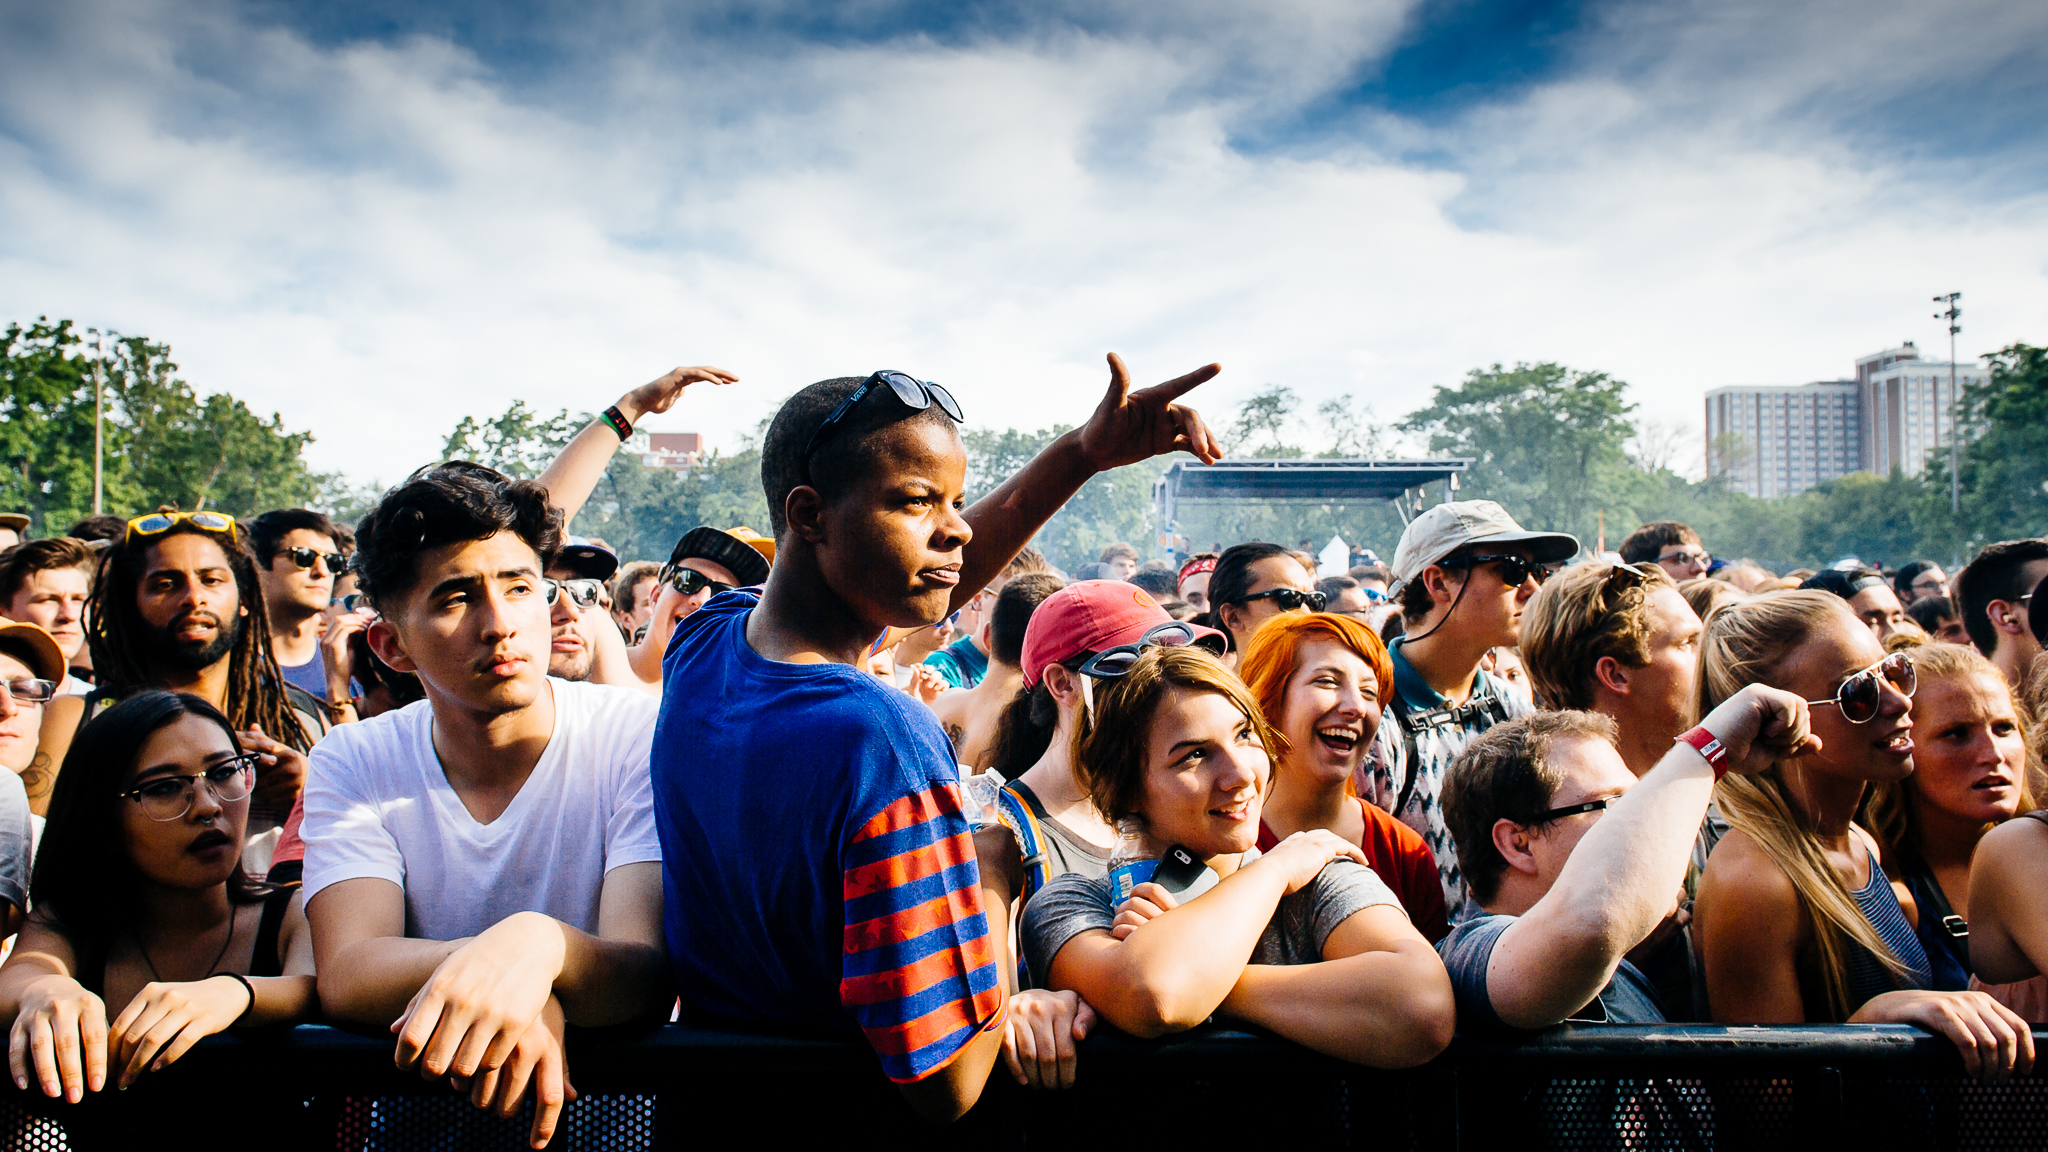 Pitchfork 2015, Sunday: Faces in the crowd